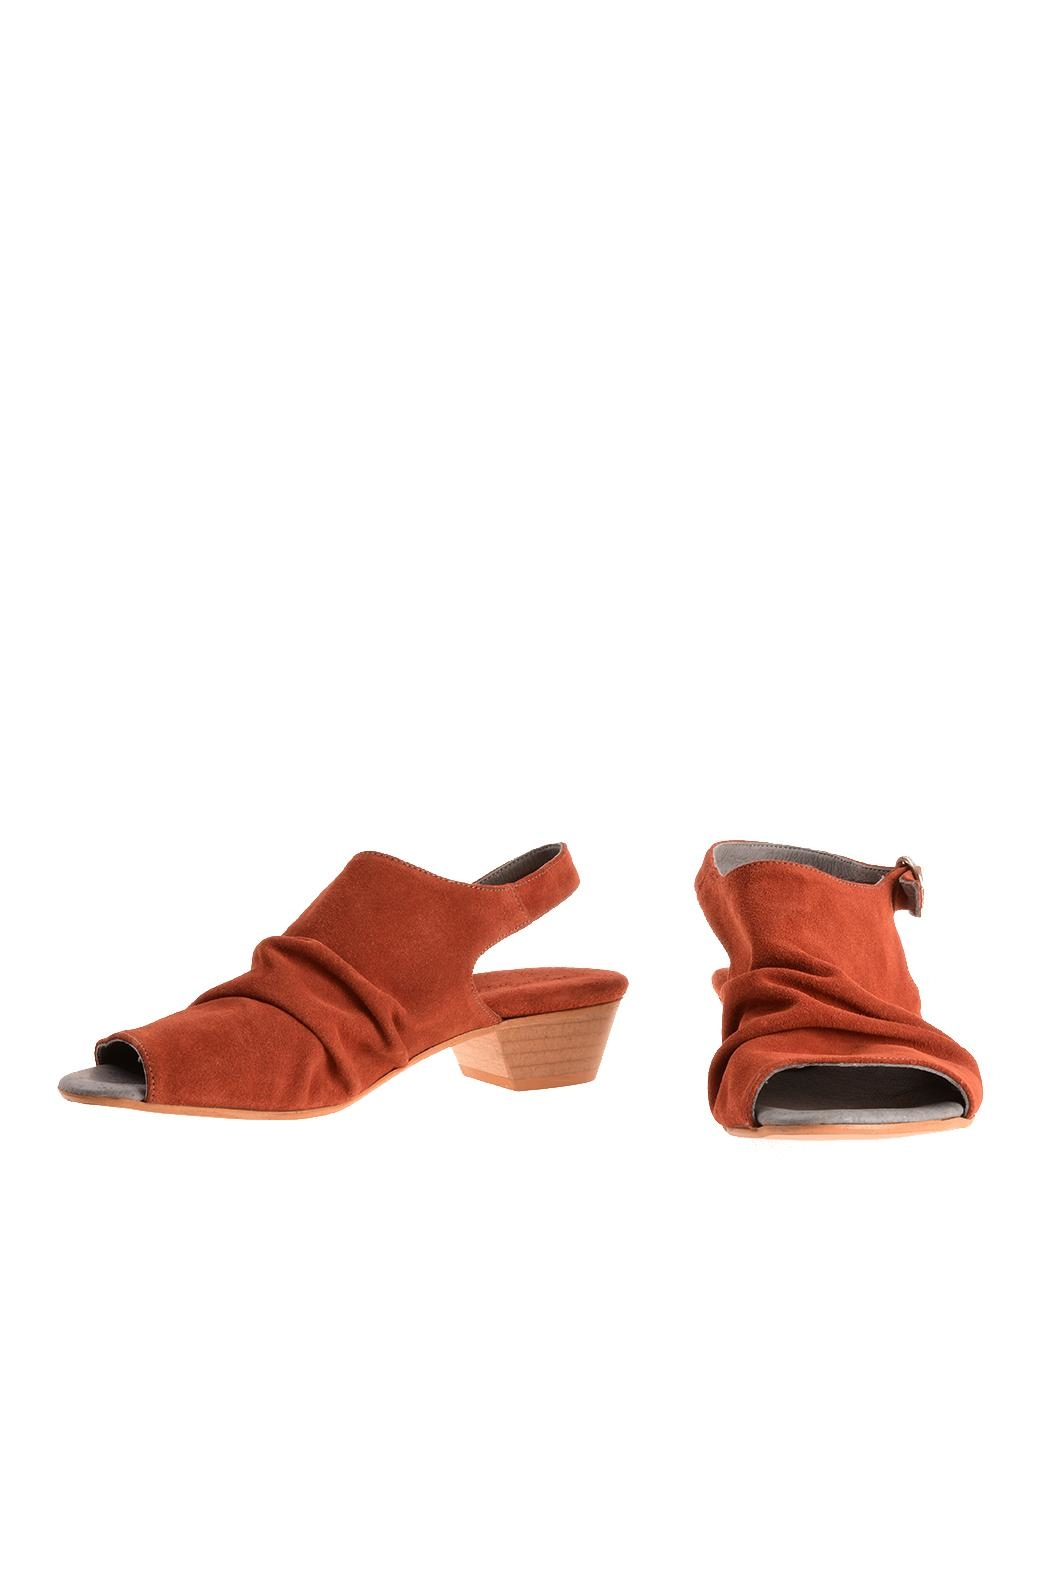 Bottega Bash Orange Suede Sandal - Main Image